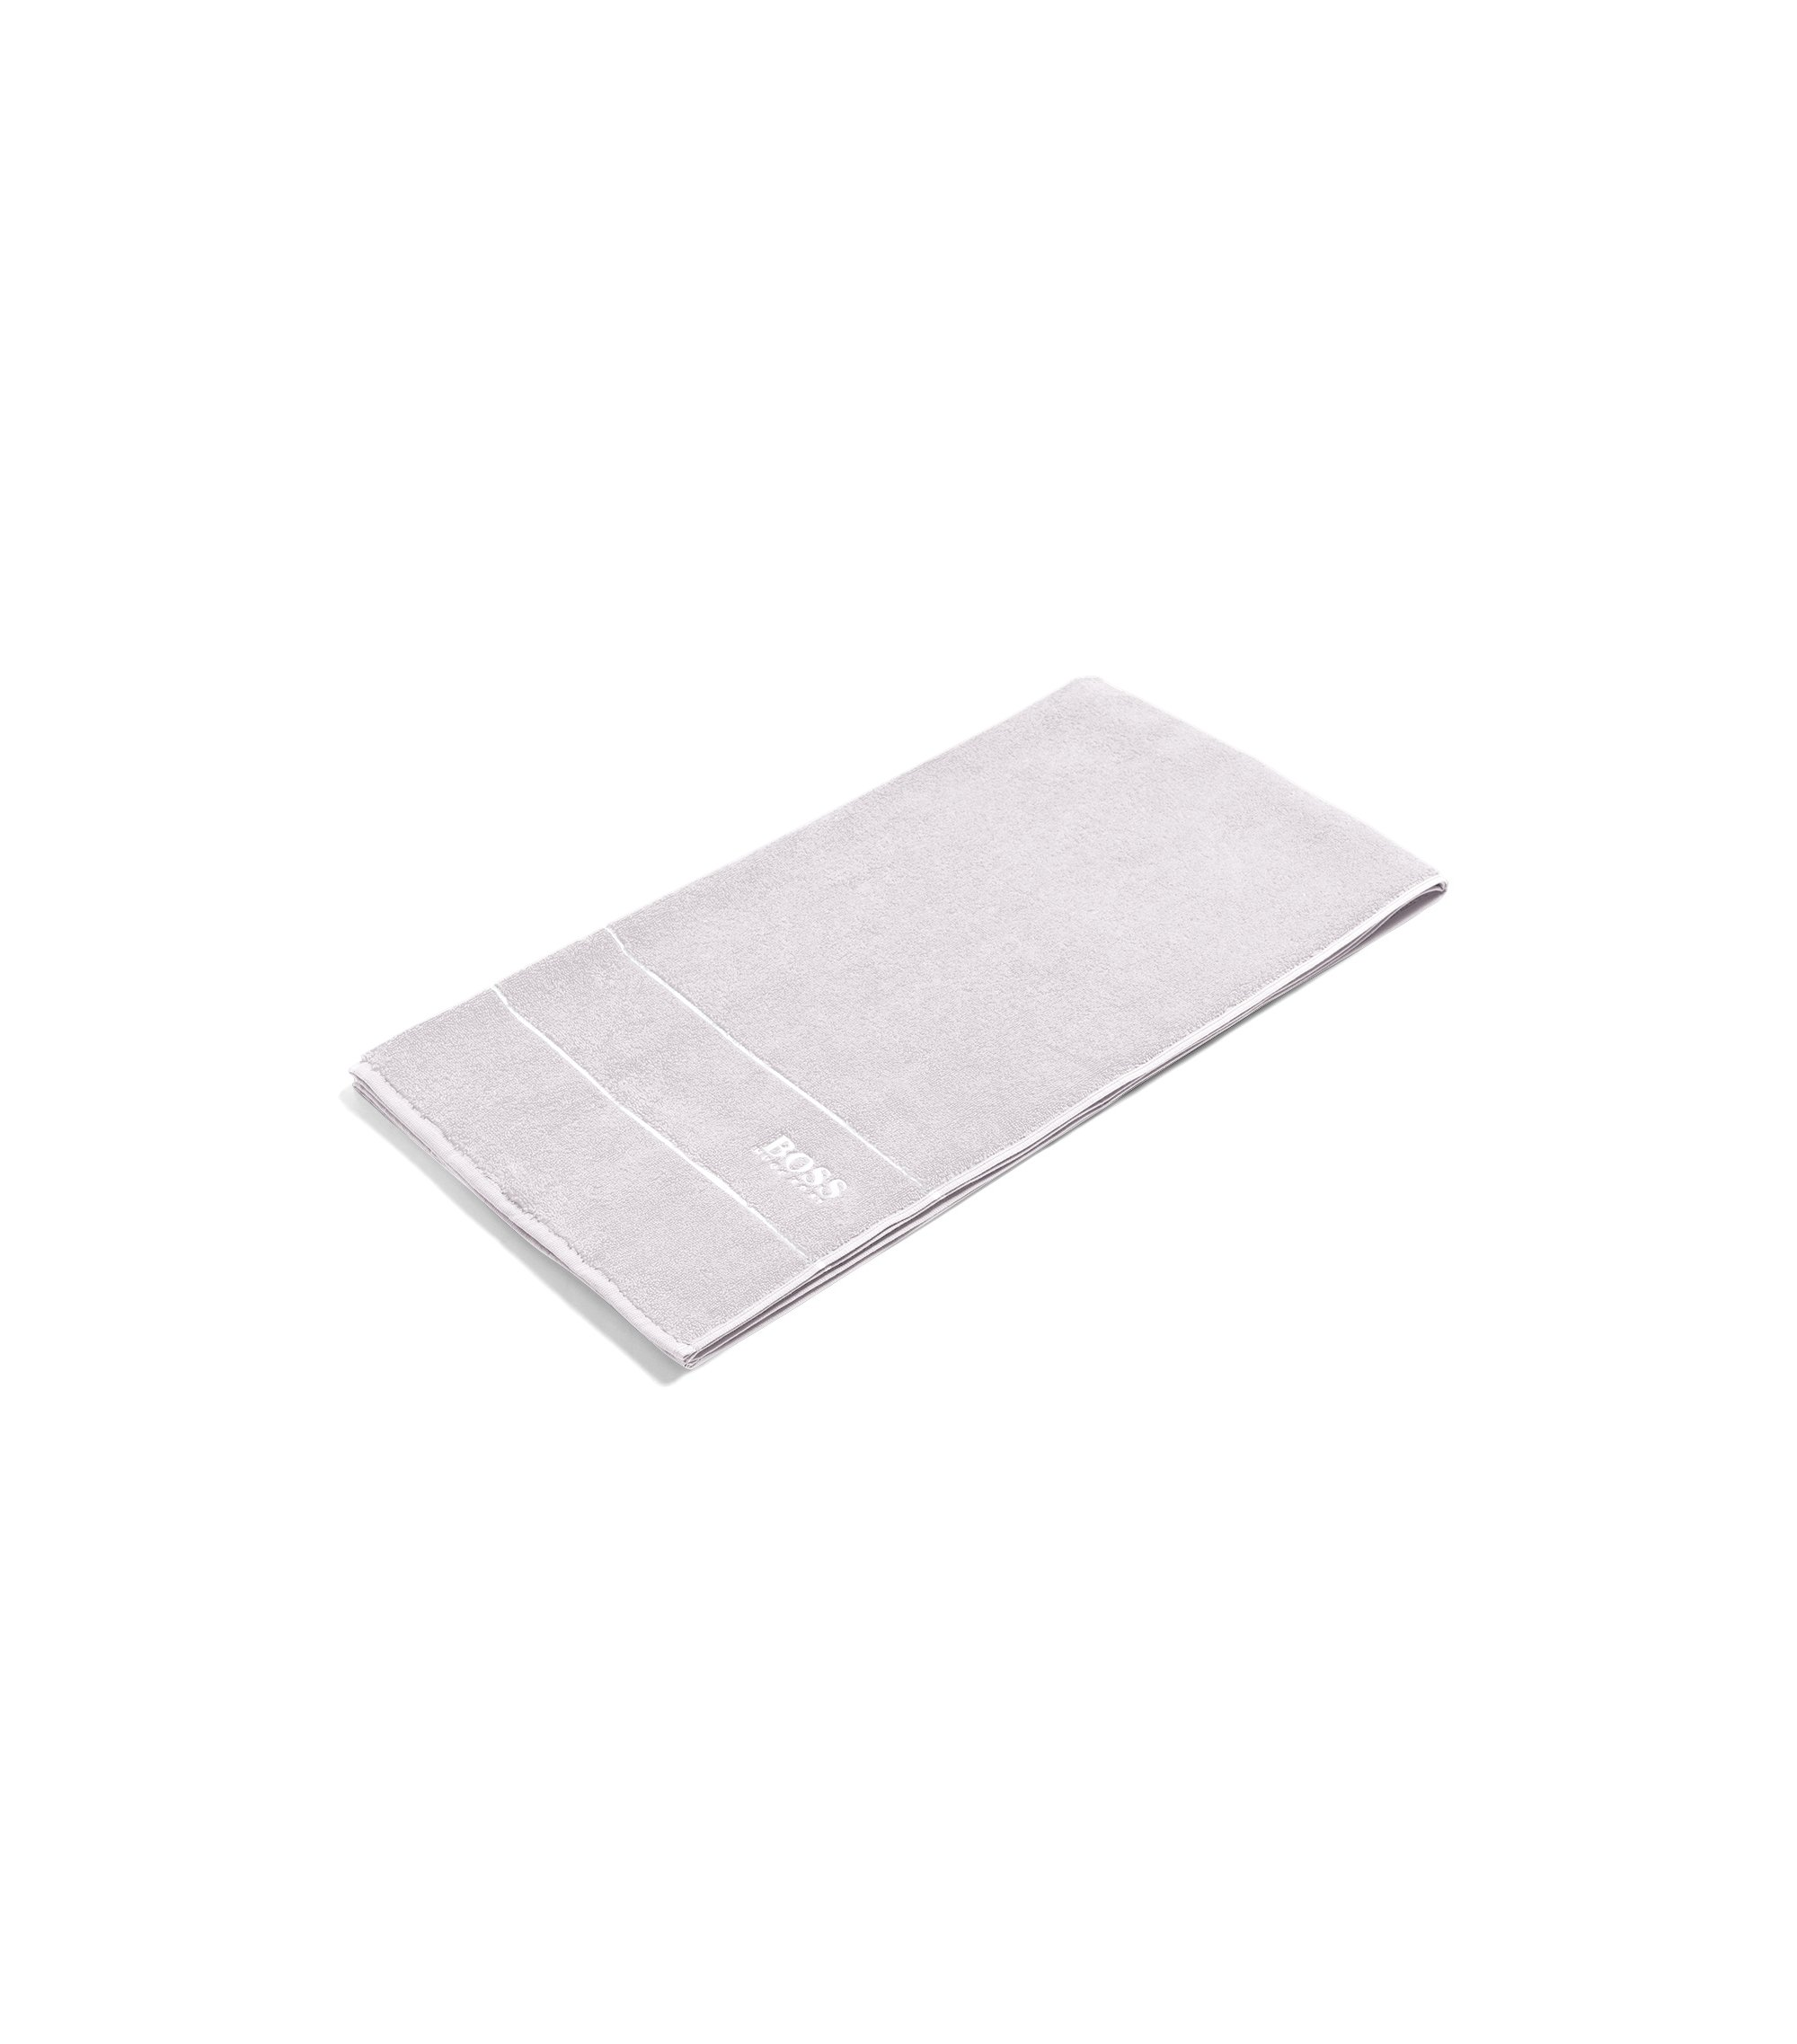 Finest Egyptian cotton bath towel with logo border, Silver